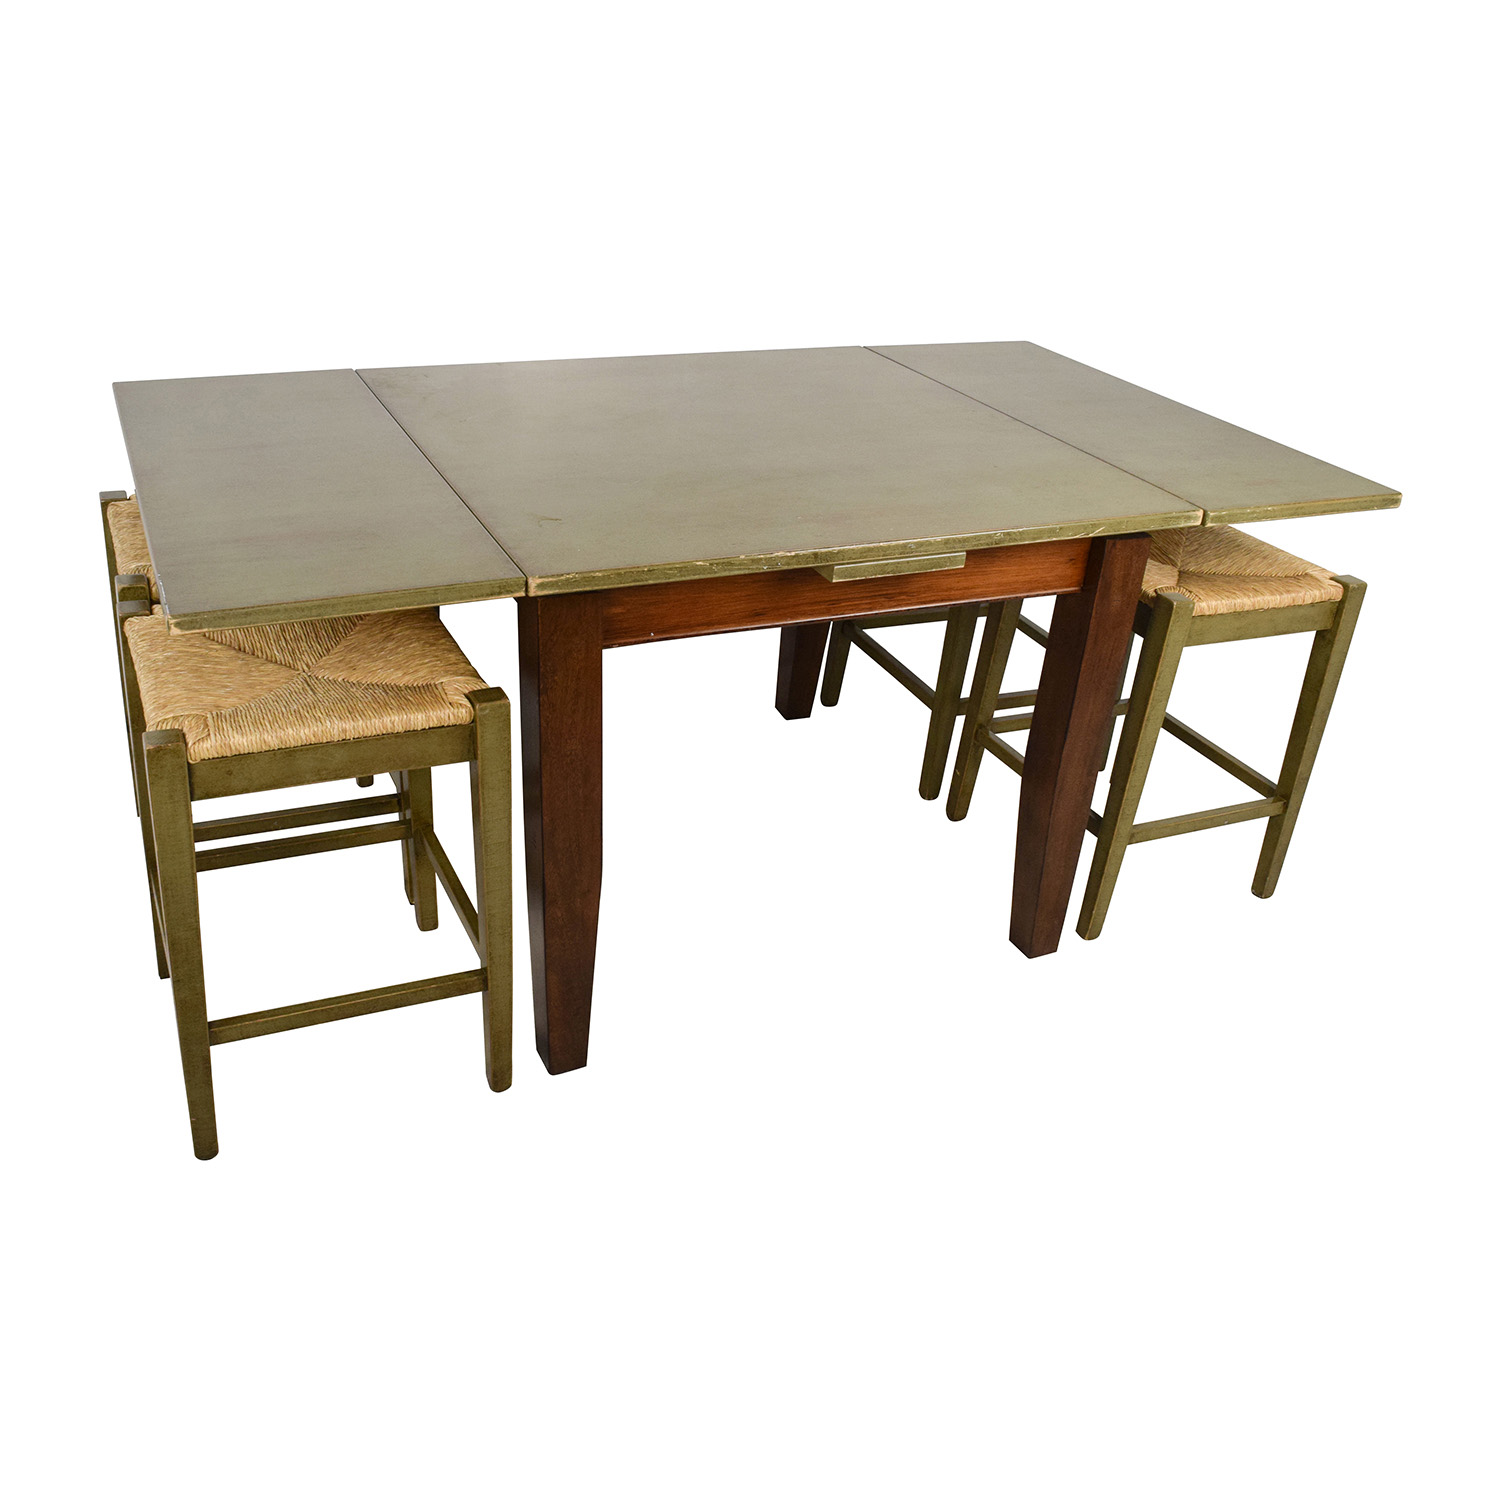 74% OFF Unkown Rustic Extendable Table and Four Wicker Stools